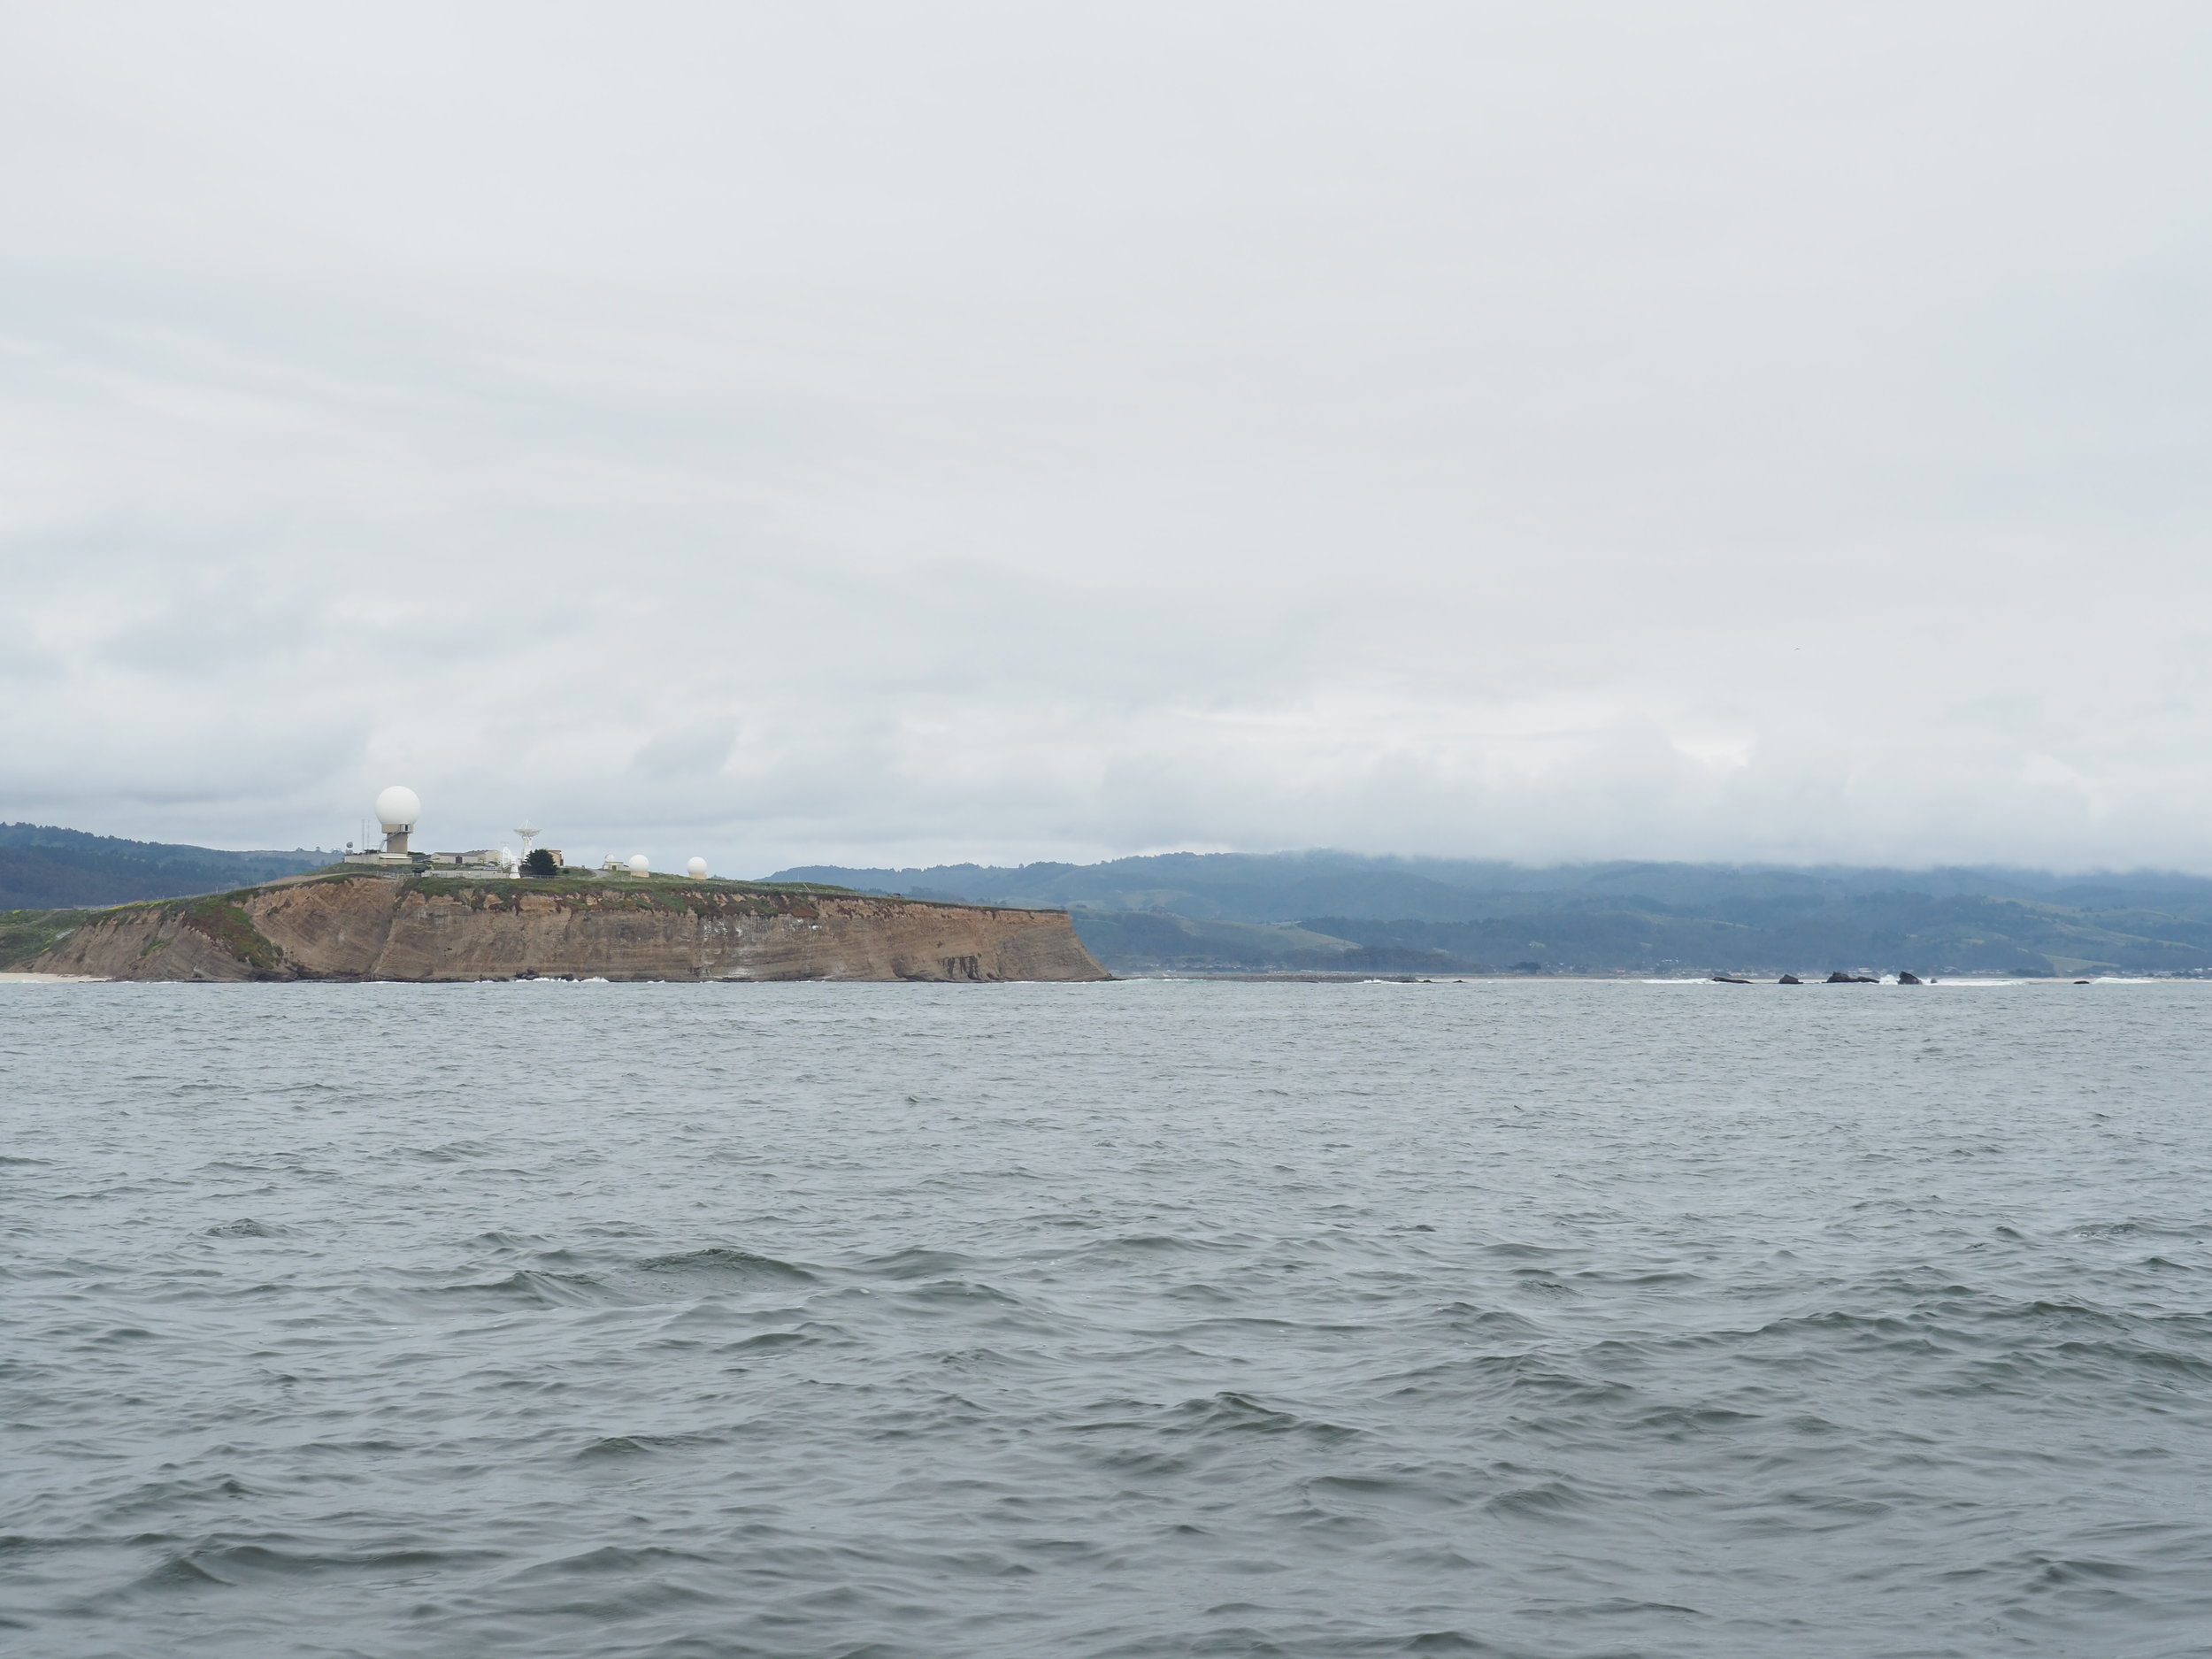 The radar domes of Pillar Point to the left and the rocks of Mavericks to the right. We gave those a wide berth and tucked into the outer harbor around the point.